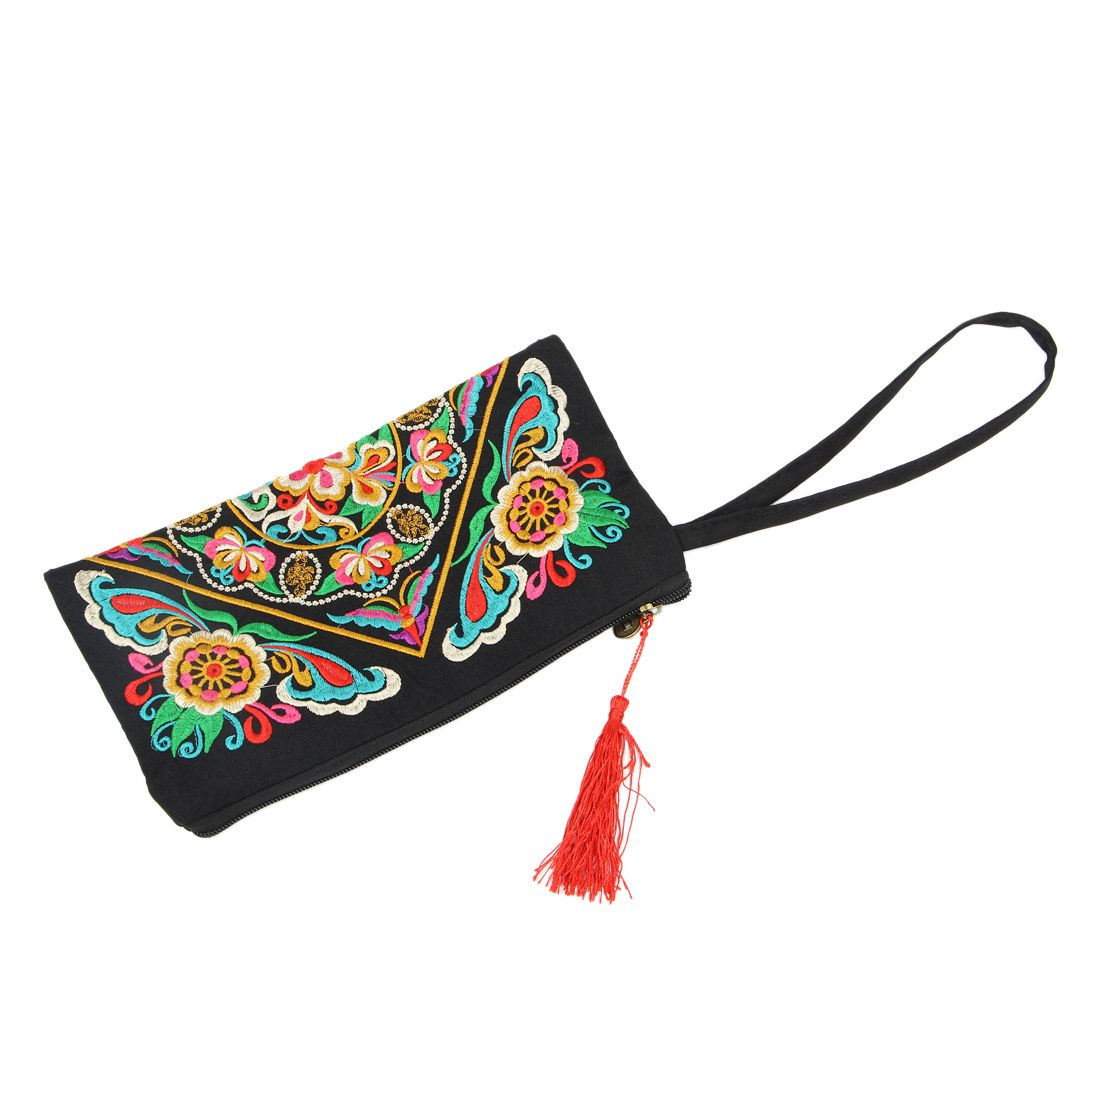 And Good Quality Canvas Wallet Embroider Purse Clutch Mobile Phone Bag Coin Bag-Galsang Flower Nice Bags